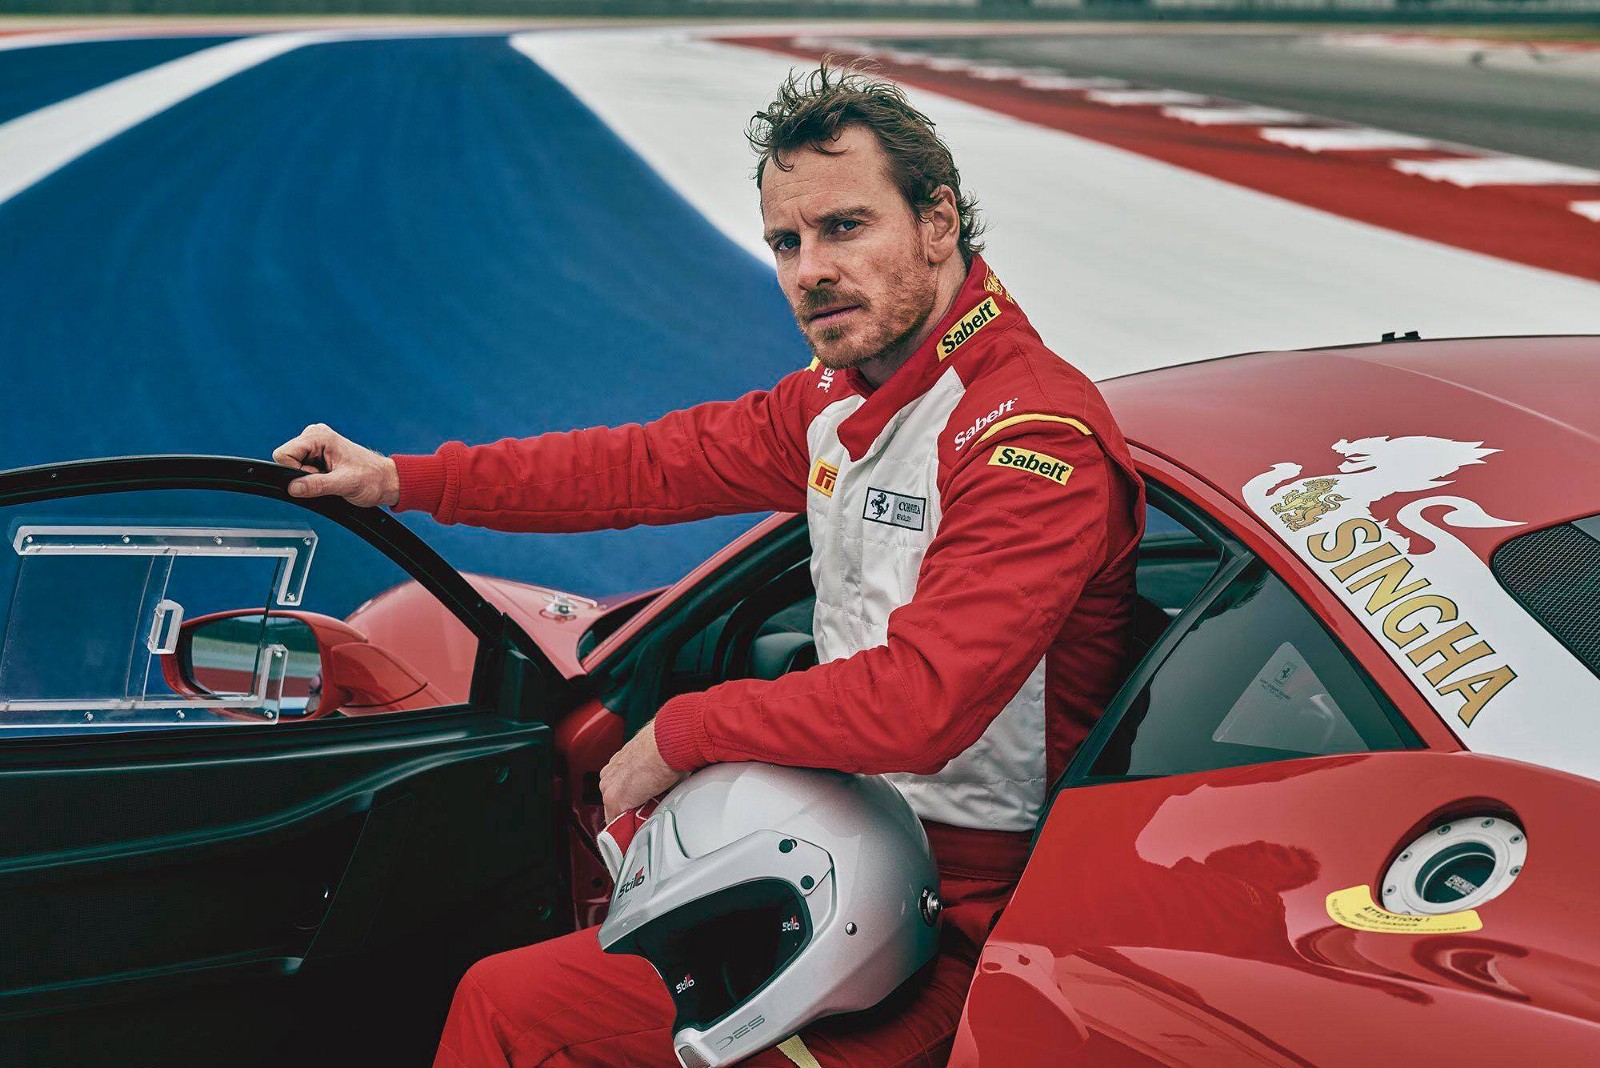 michael fassbender sitting in red race car